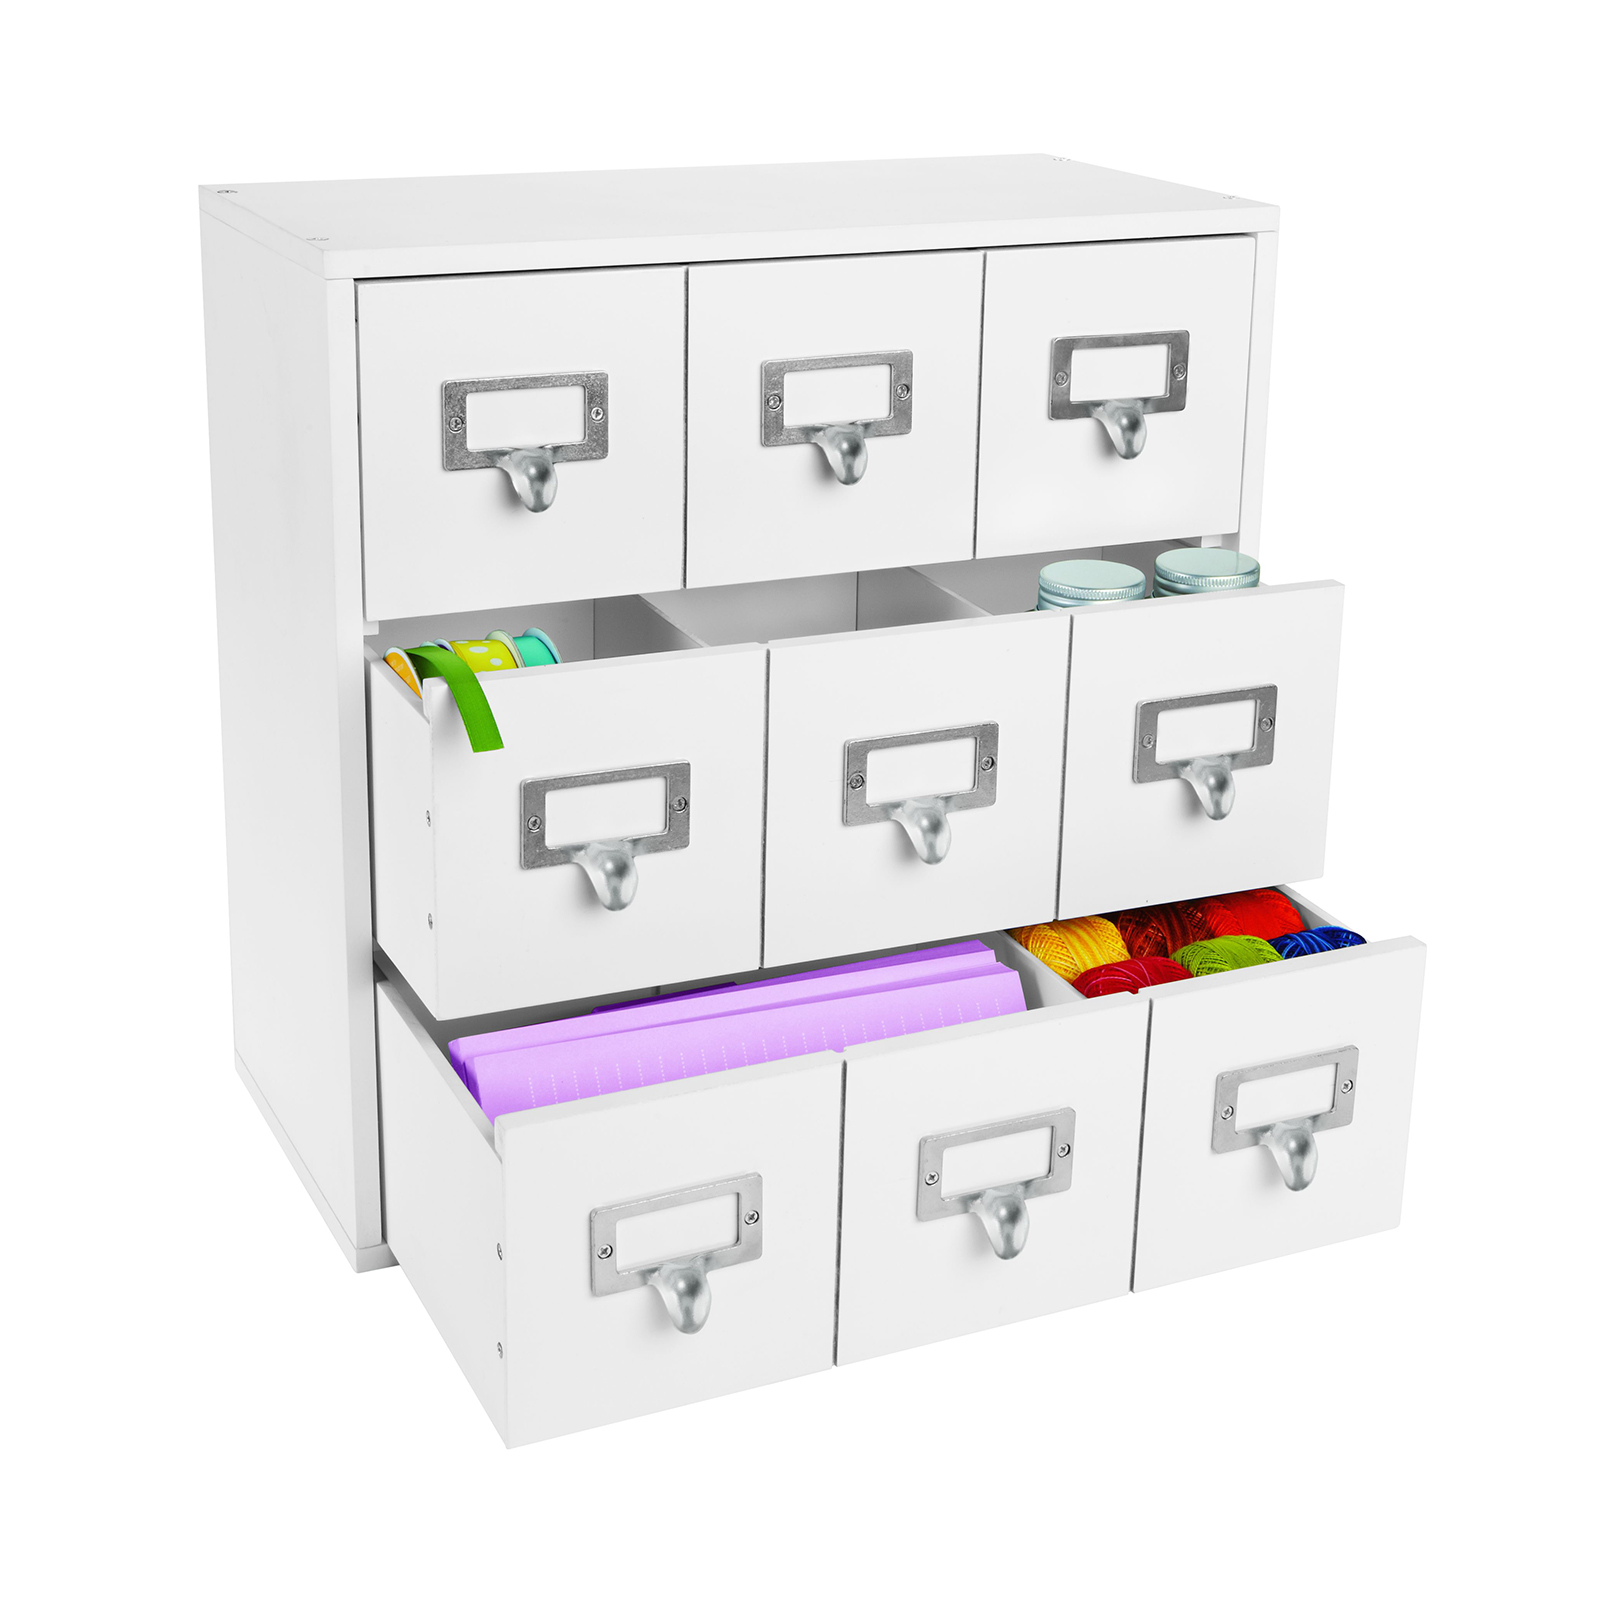 Knitting Organizer Michaels : Find the desktop storage drawer cube by ashland at michaels